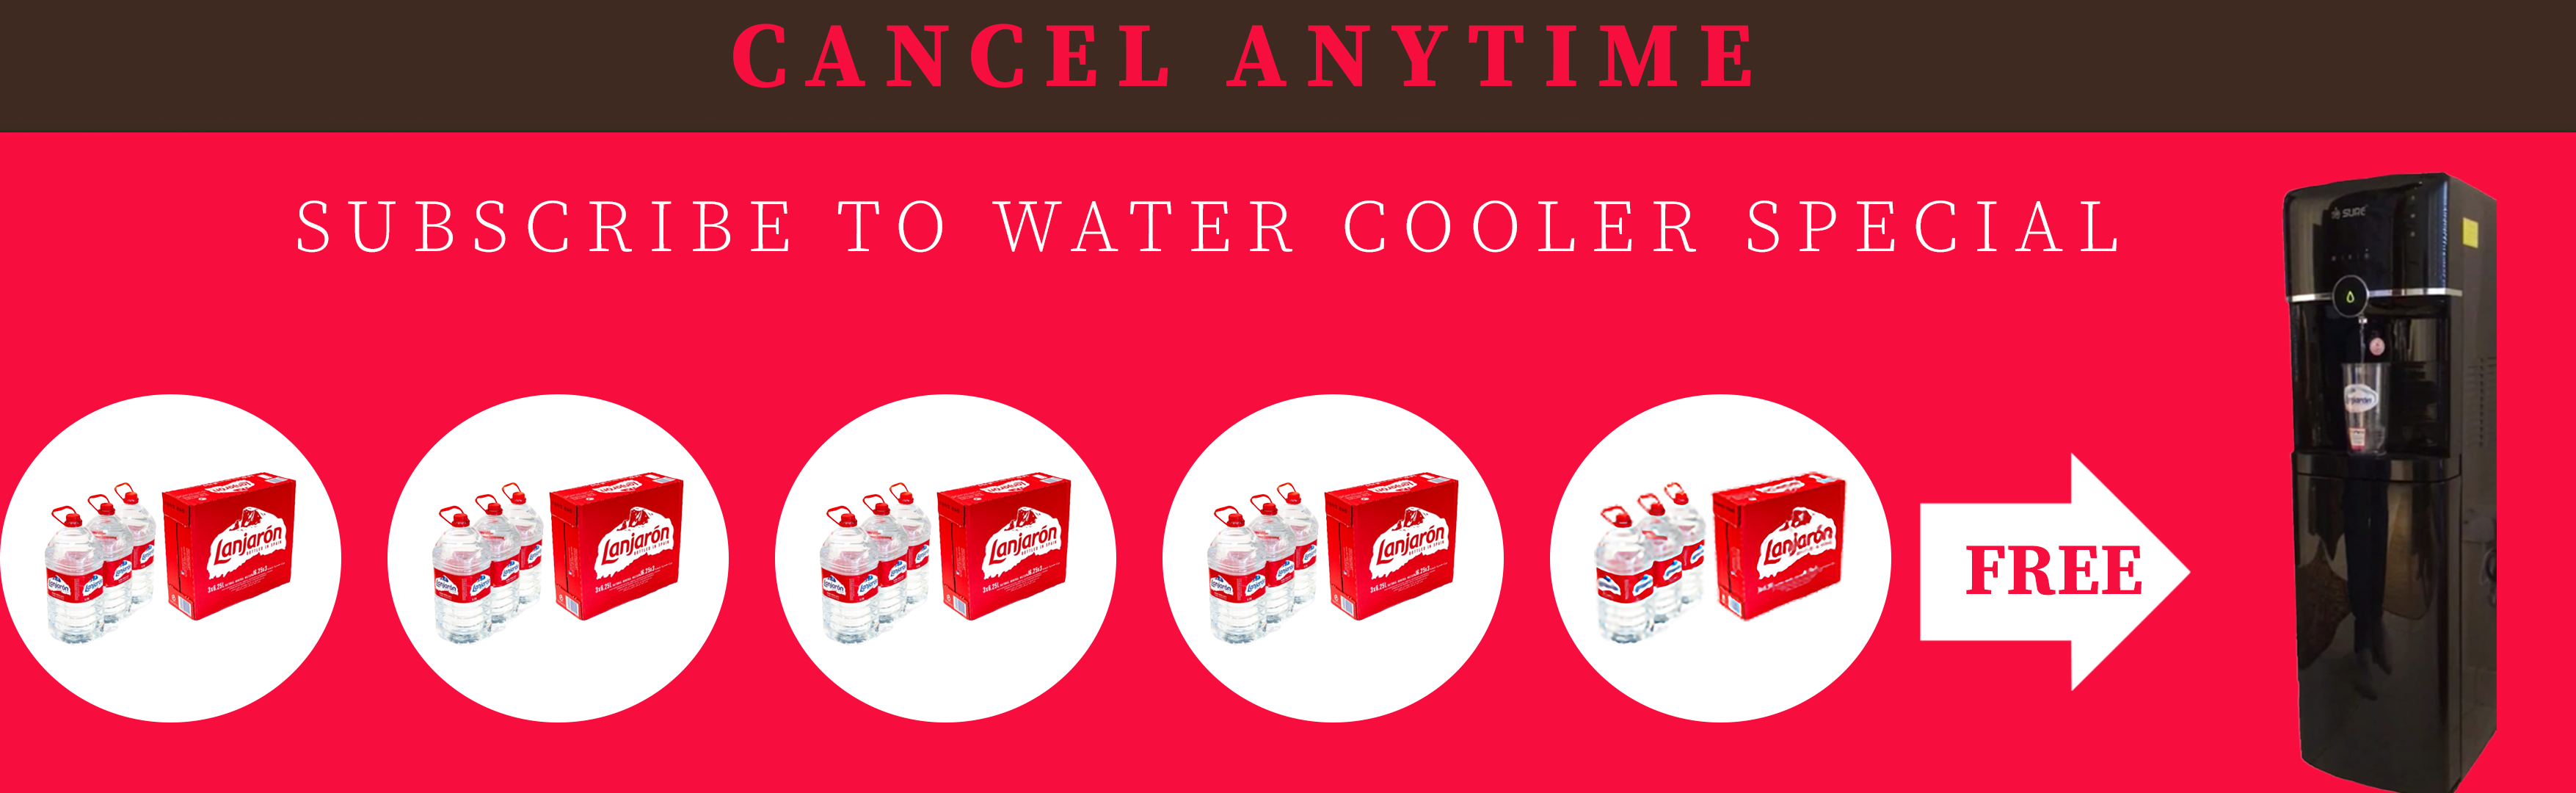 SUBSCRIBE WATER COOLER SPECIAL